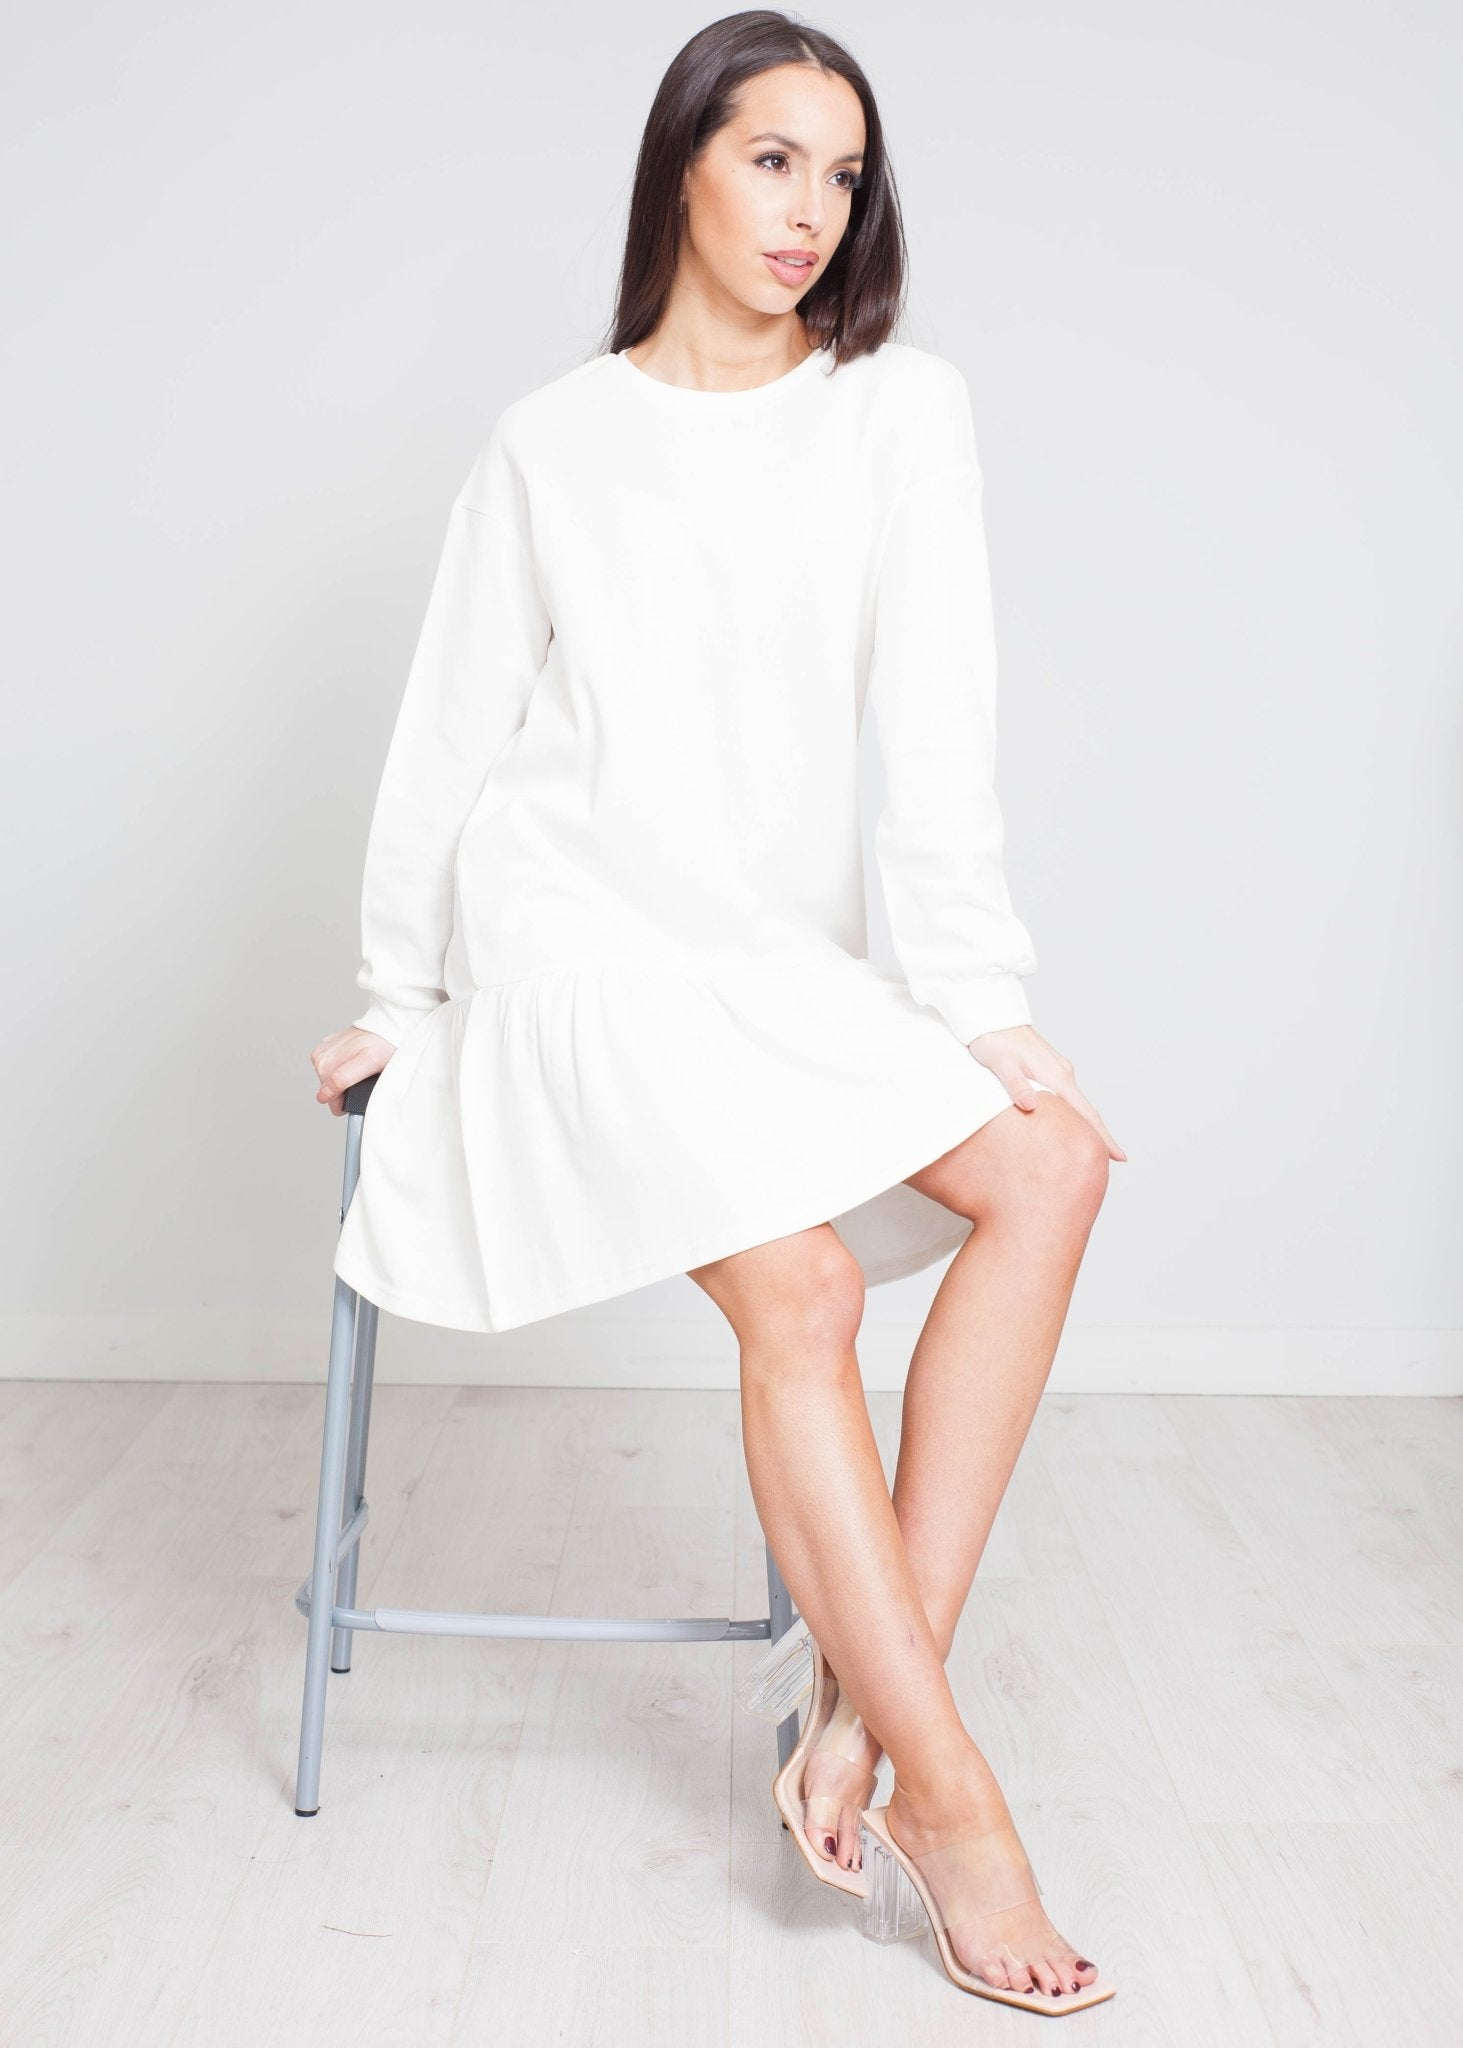 Daisy Peplum Dress In White - The Walk in Wardrobe